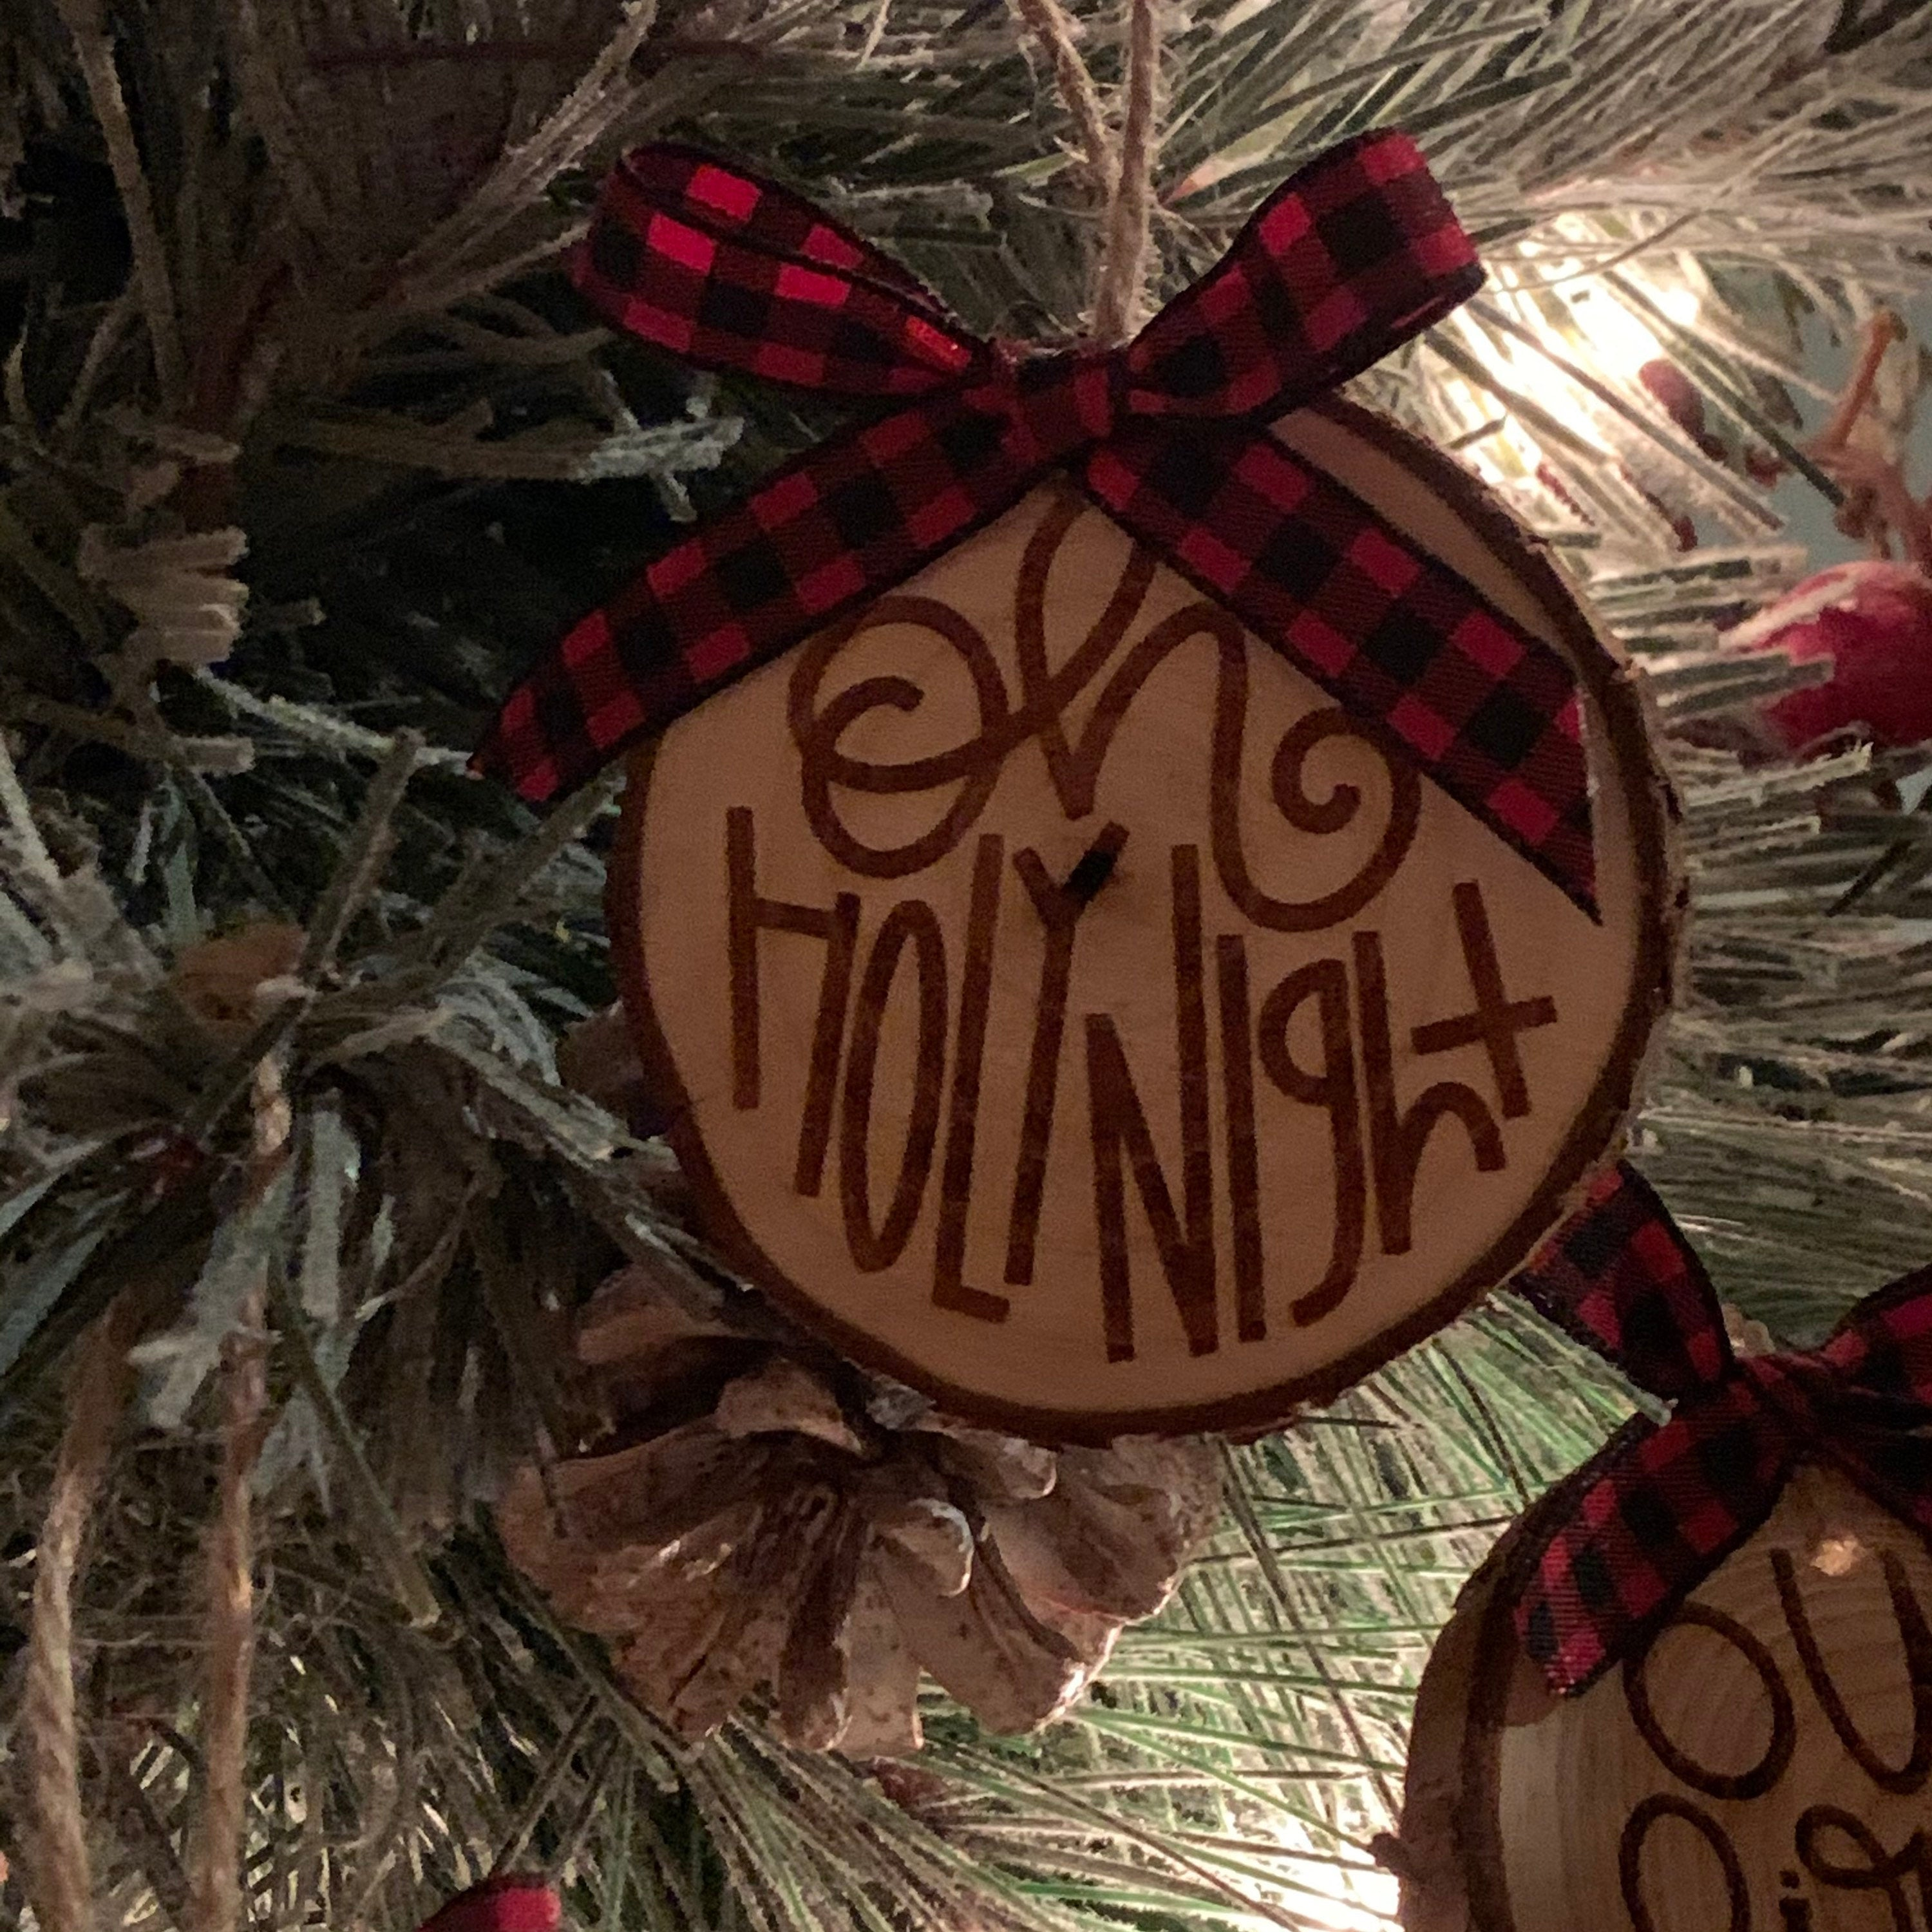 Engraved Wood Slice Ornaments With Bow